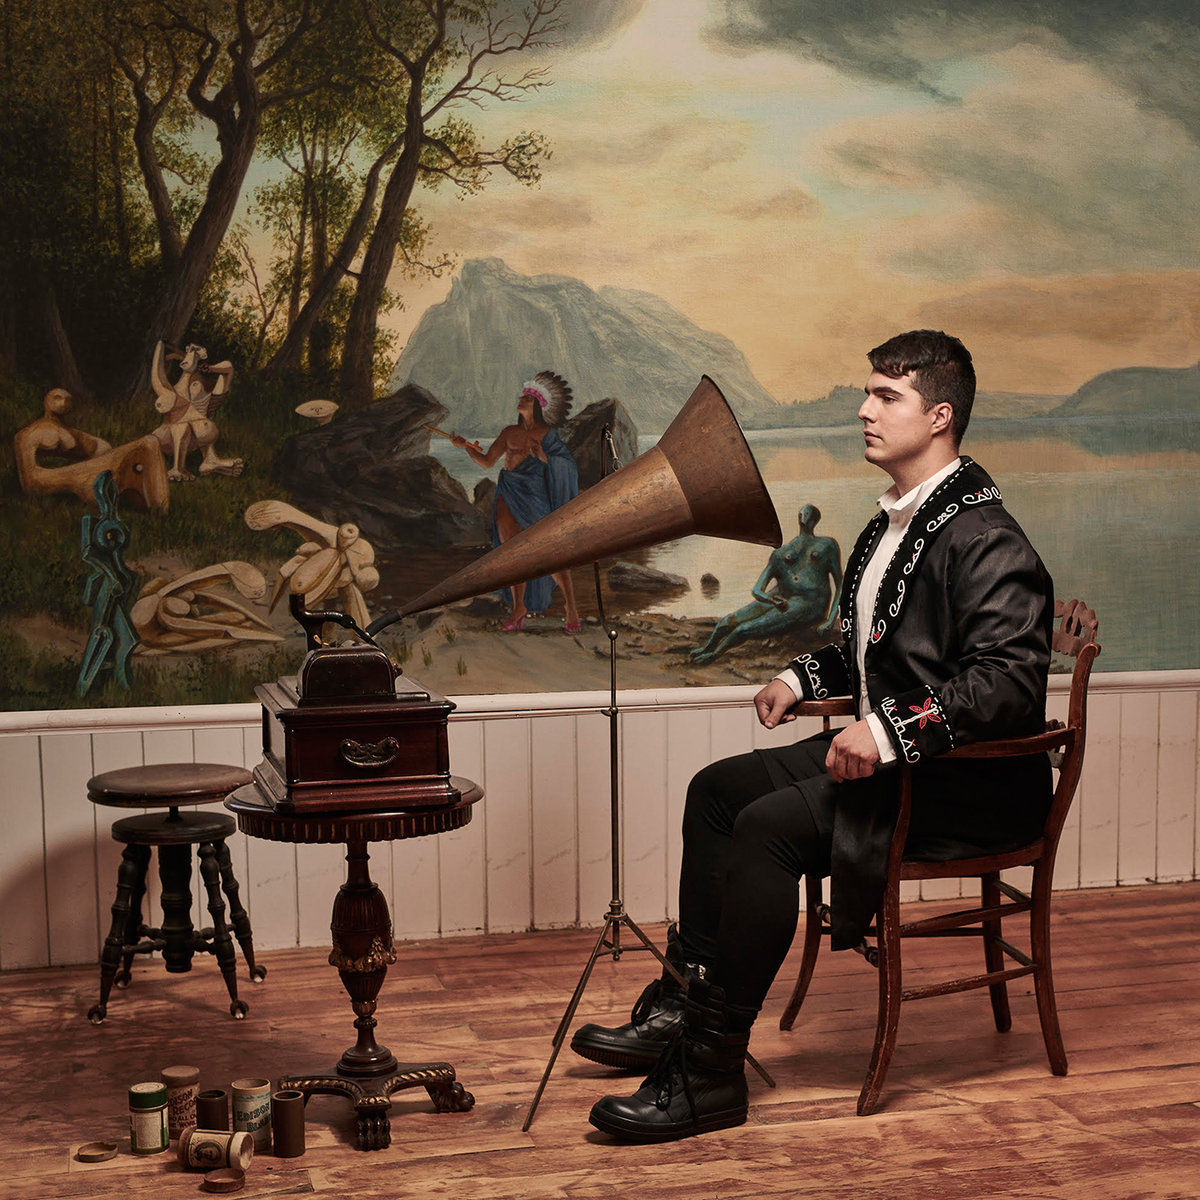 Album art for Jeremy Dutcher's 'Wolastoqiyik Lintuwakonawa' (2018) / (a photo of jeremy dutcher sitting in a chair with arm rests looking into a grammophone. the grammophone is sitting on a small table. there is a stool behind it, and in the background there is a mural of first nations people near a lake.)